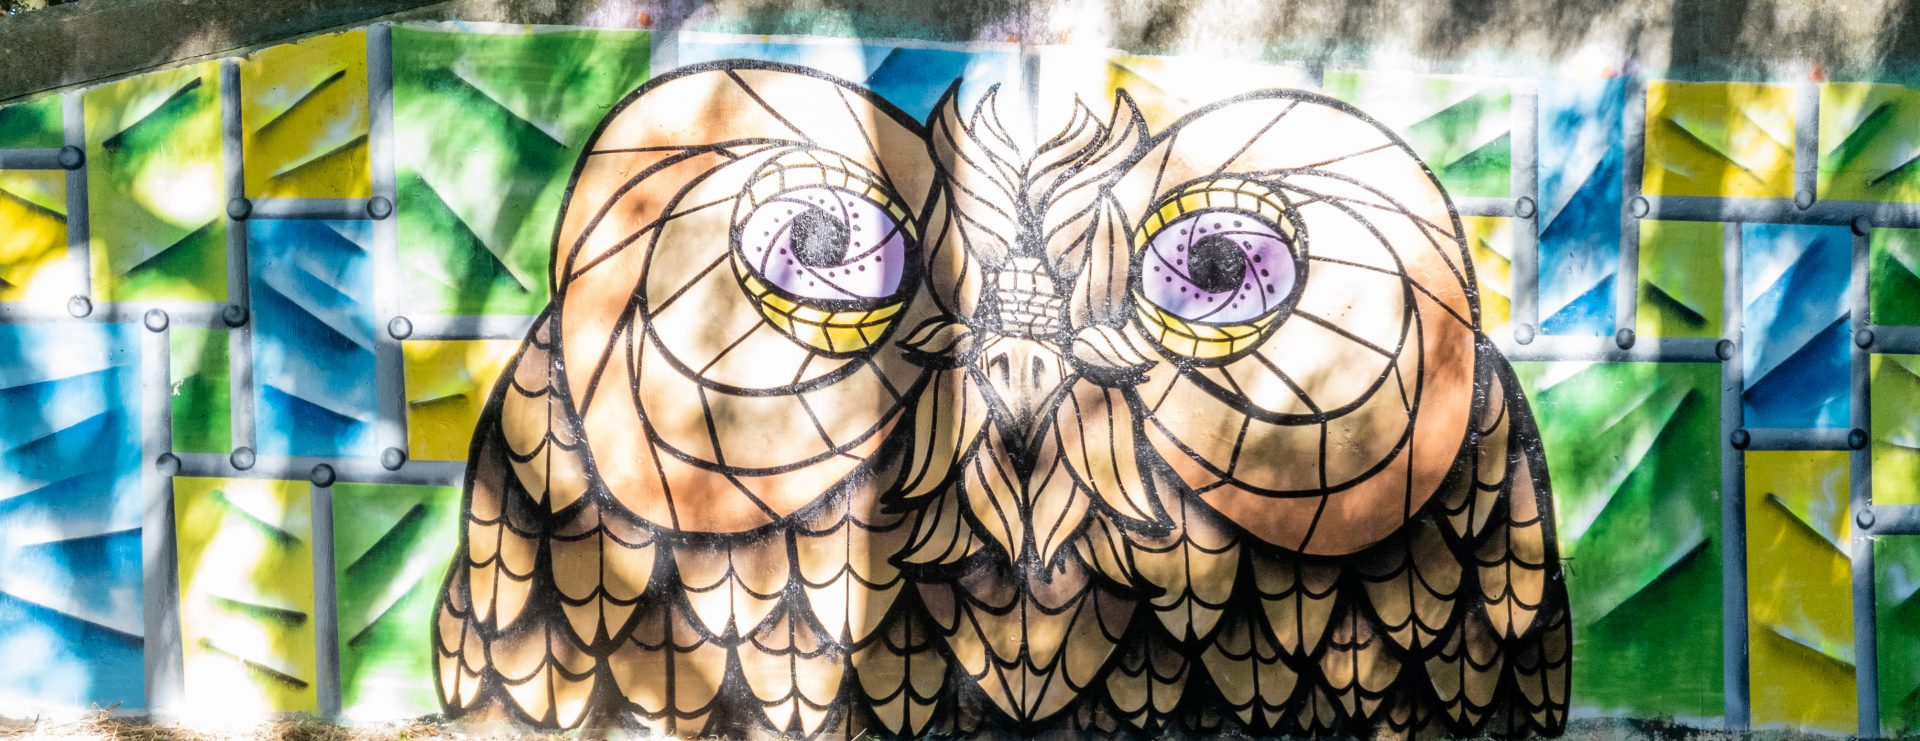 Owl Graffiti at Benhall park